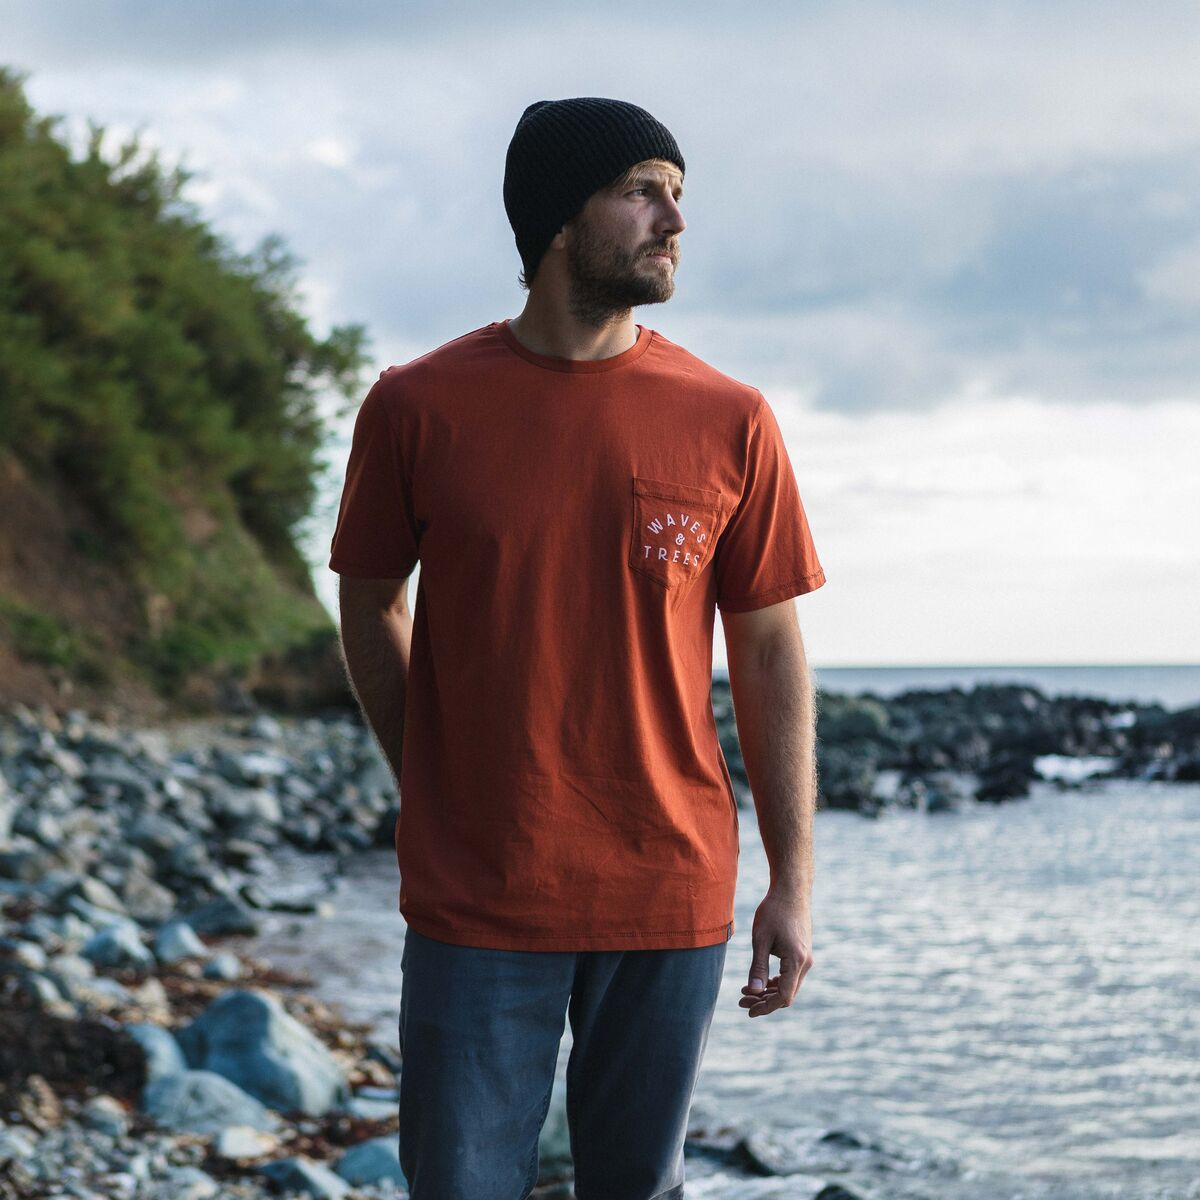 Waves & Trees Pocket T-Shirt - Rooibos Orange image 1